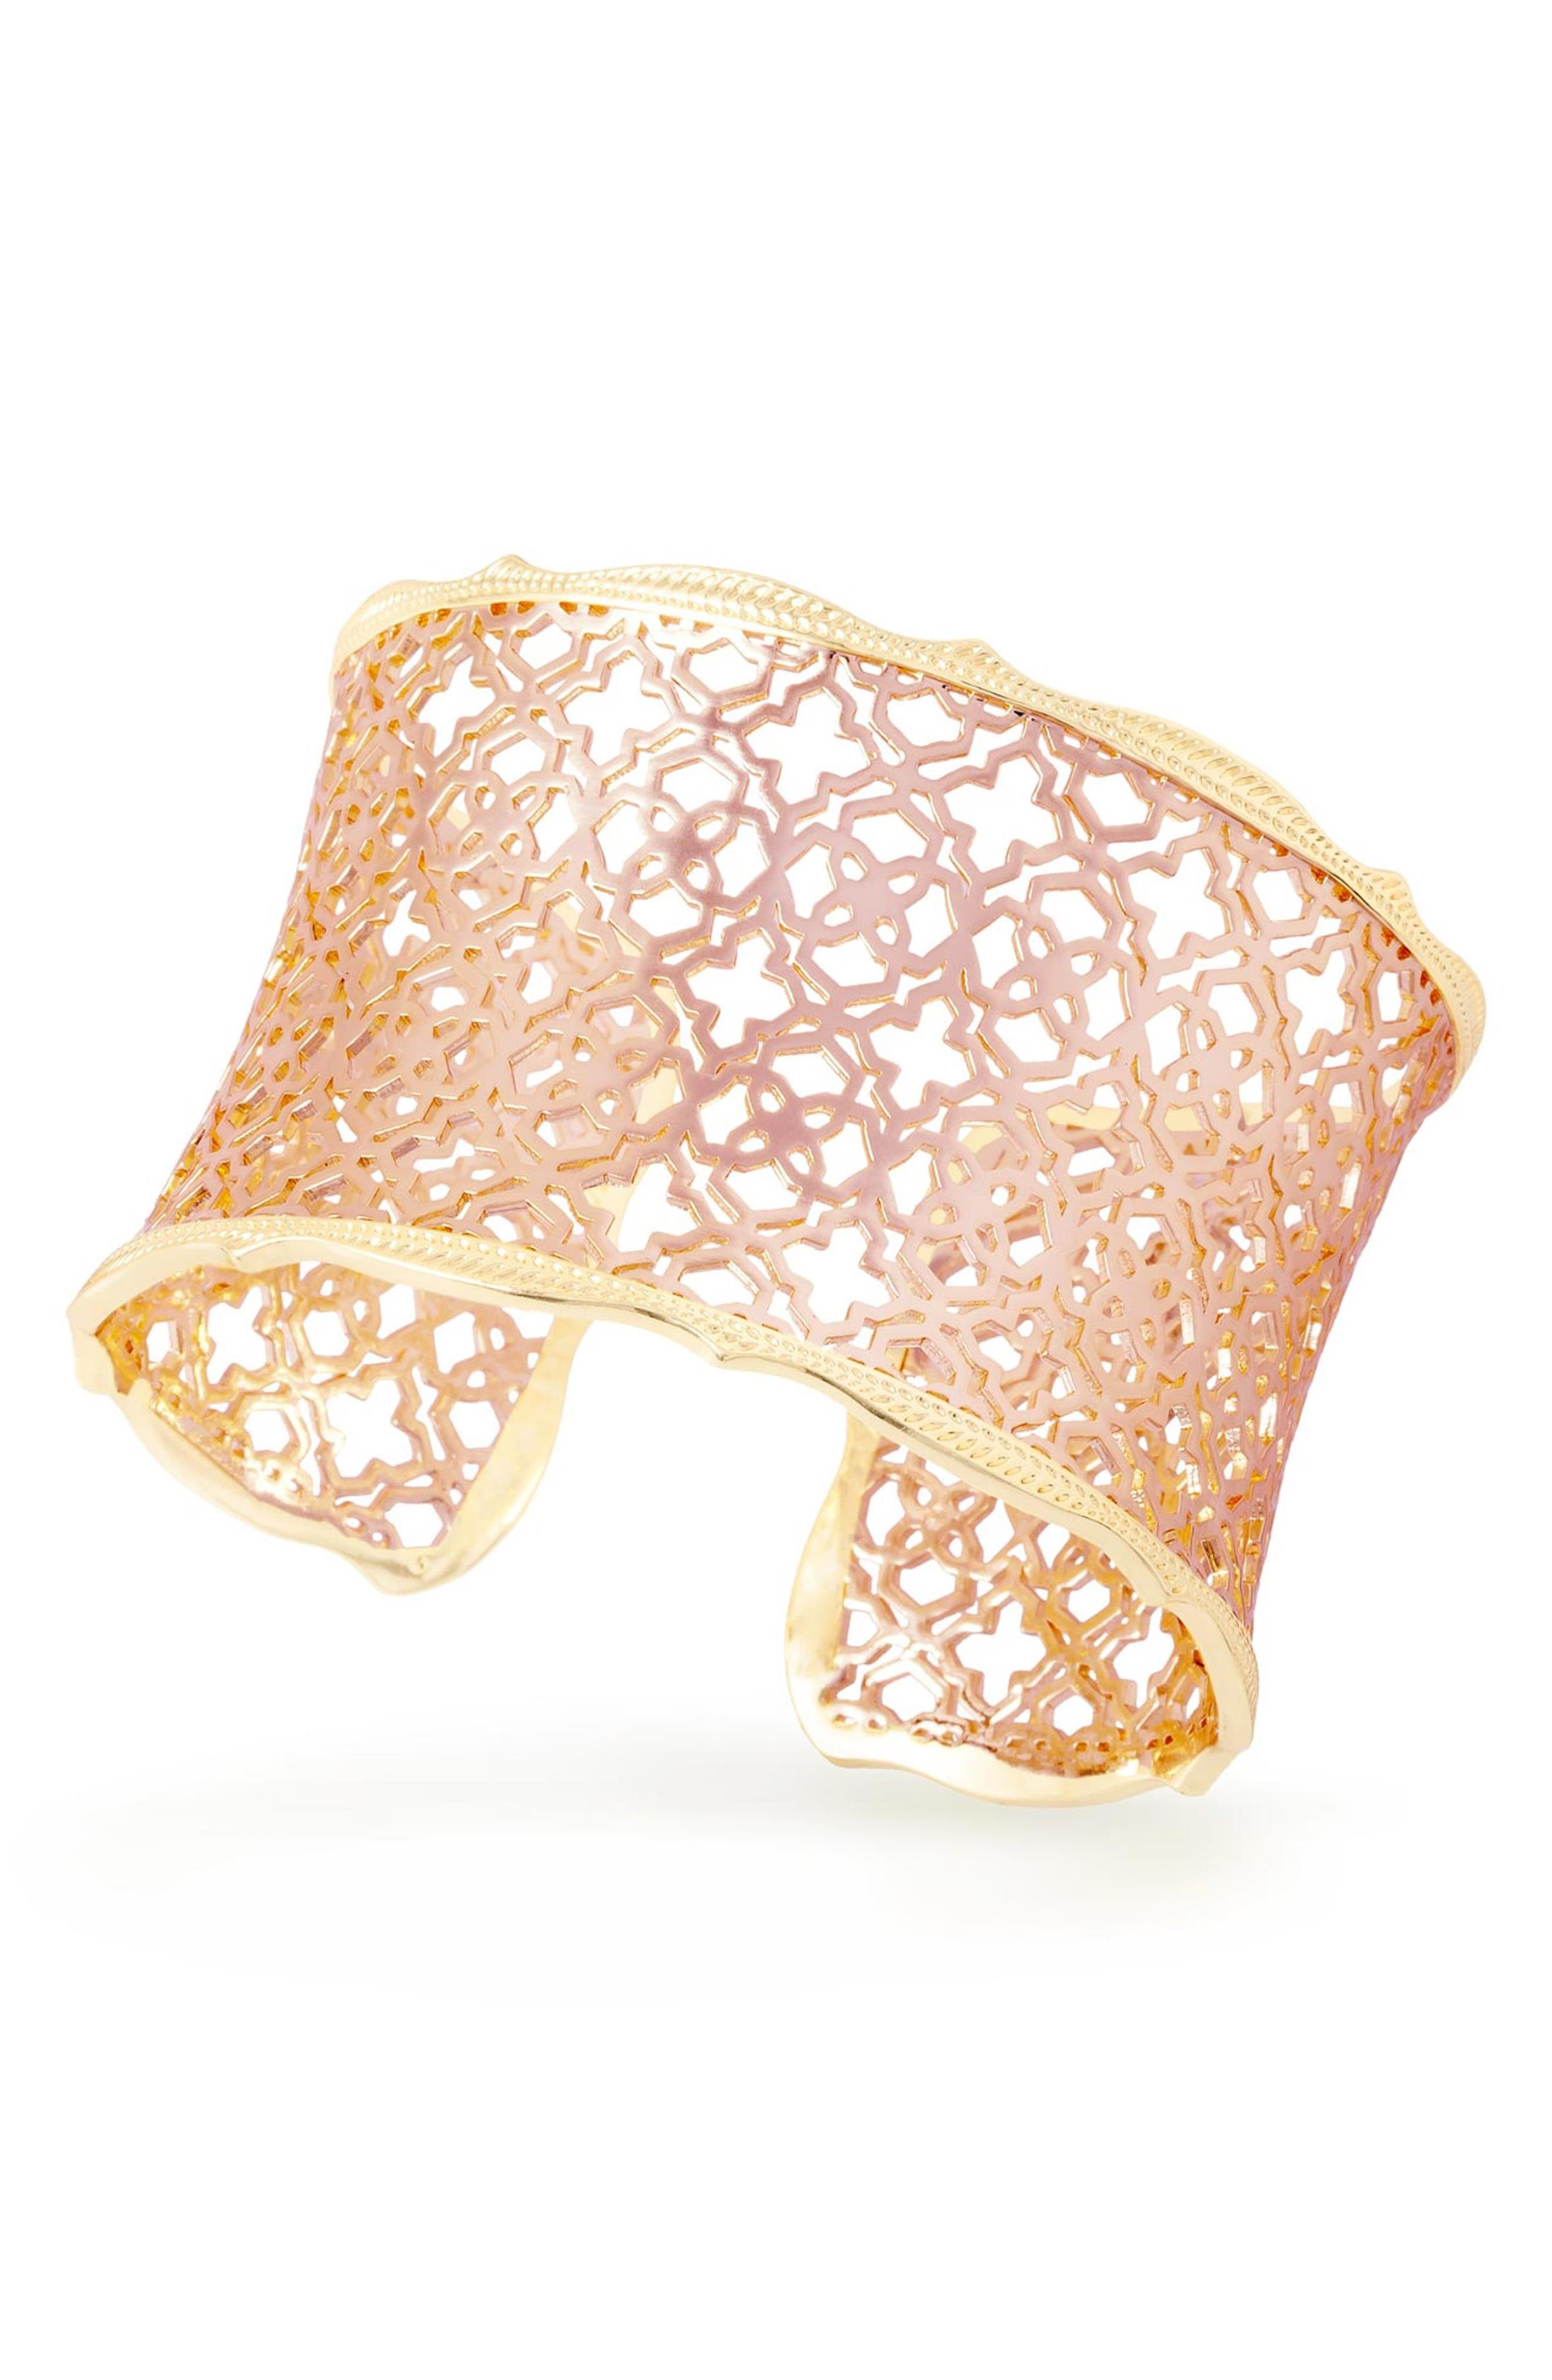 'Mystic Bazaar - Candice' Wide Cuff,                             Alternate thumbnail 3, color,                             Rose Gold/ Gold